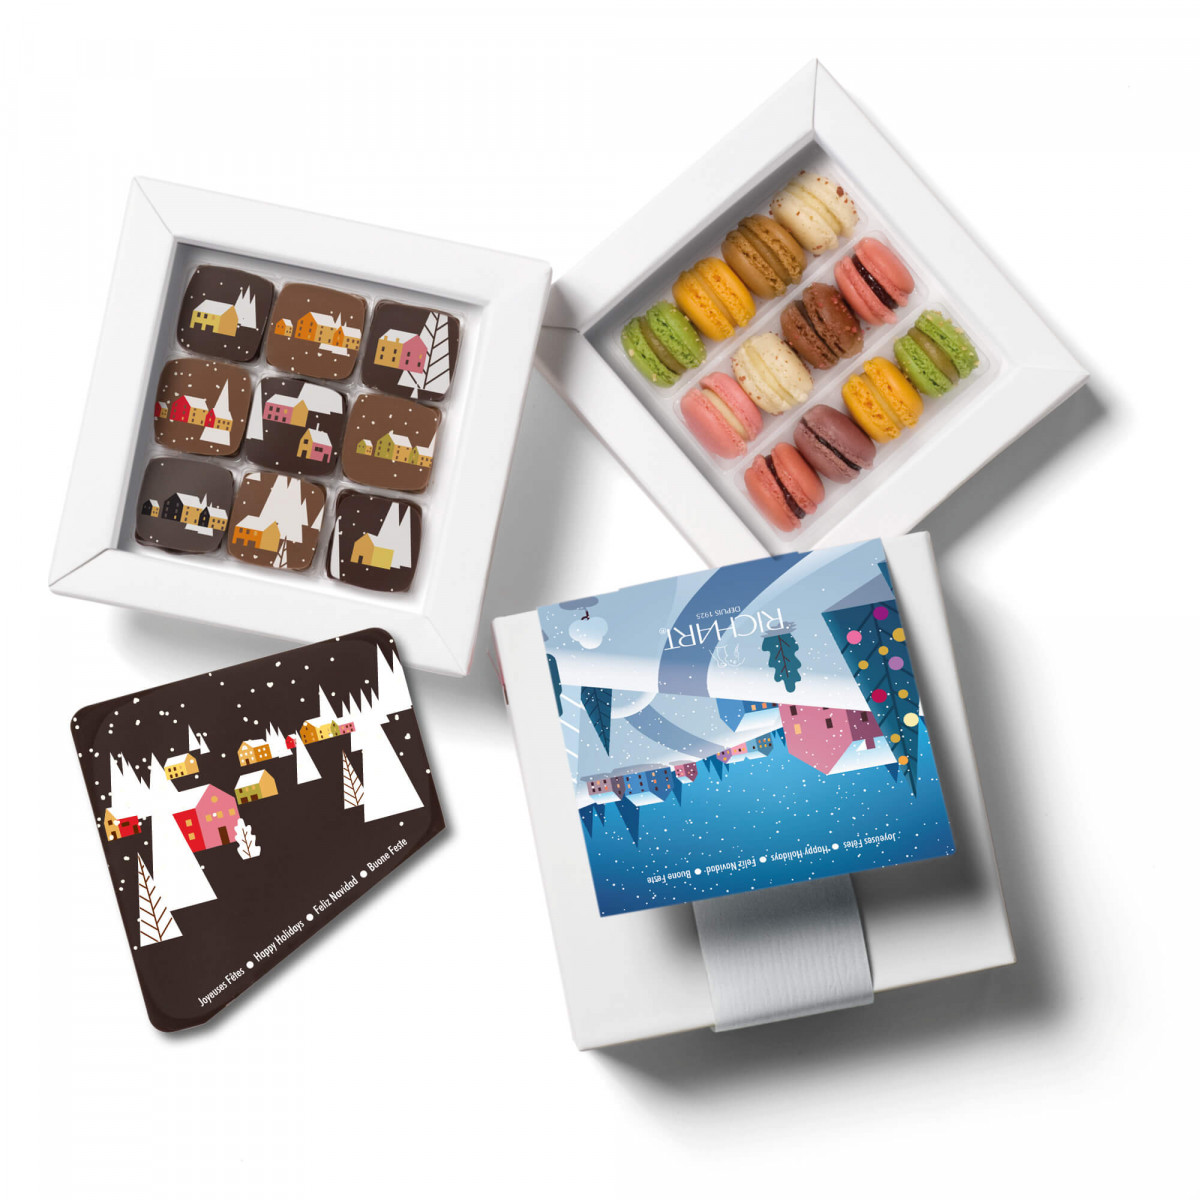 Box of 9 filled chocolates, 12 French mini-macarons and 1 Happy Holidays chocolate message card